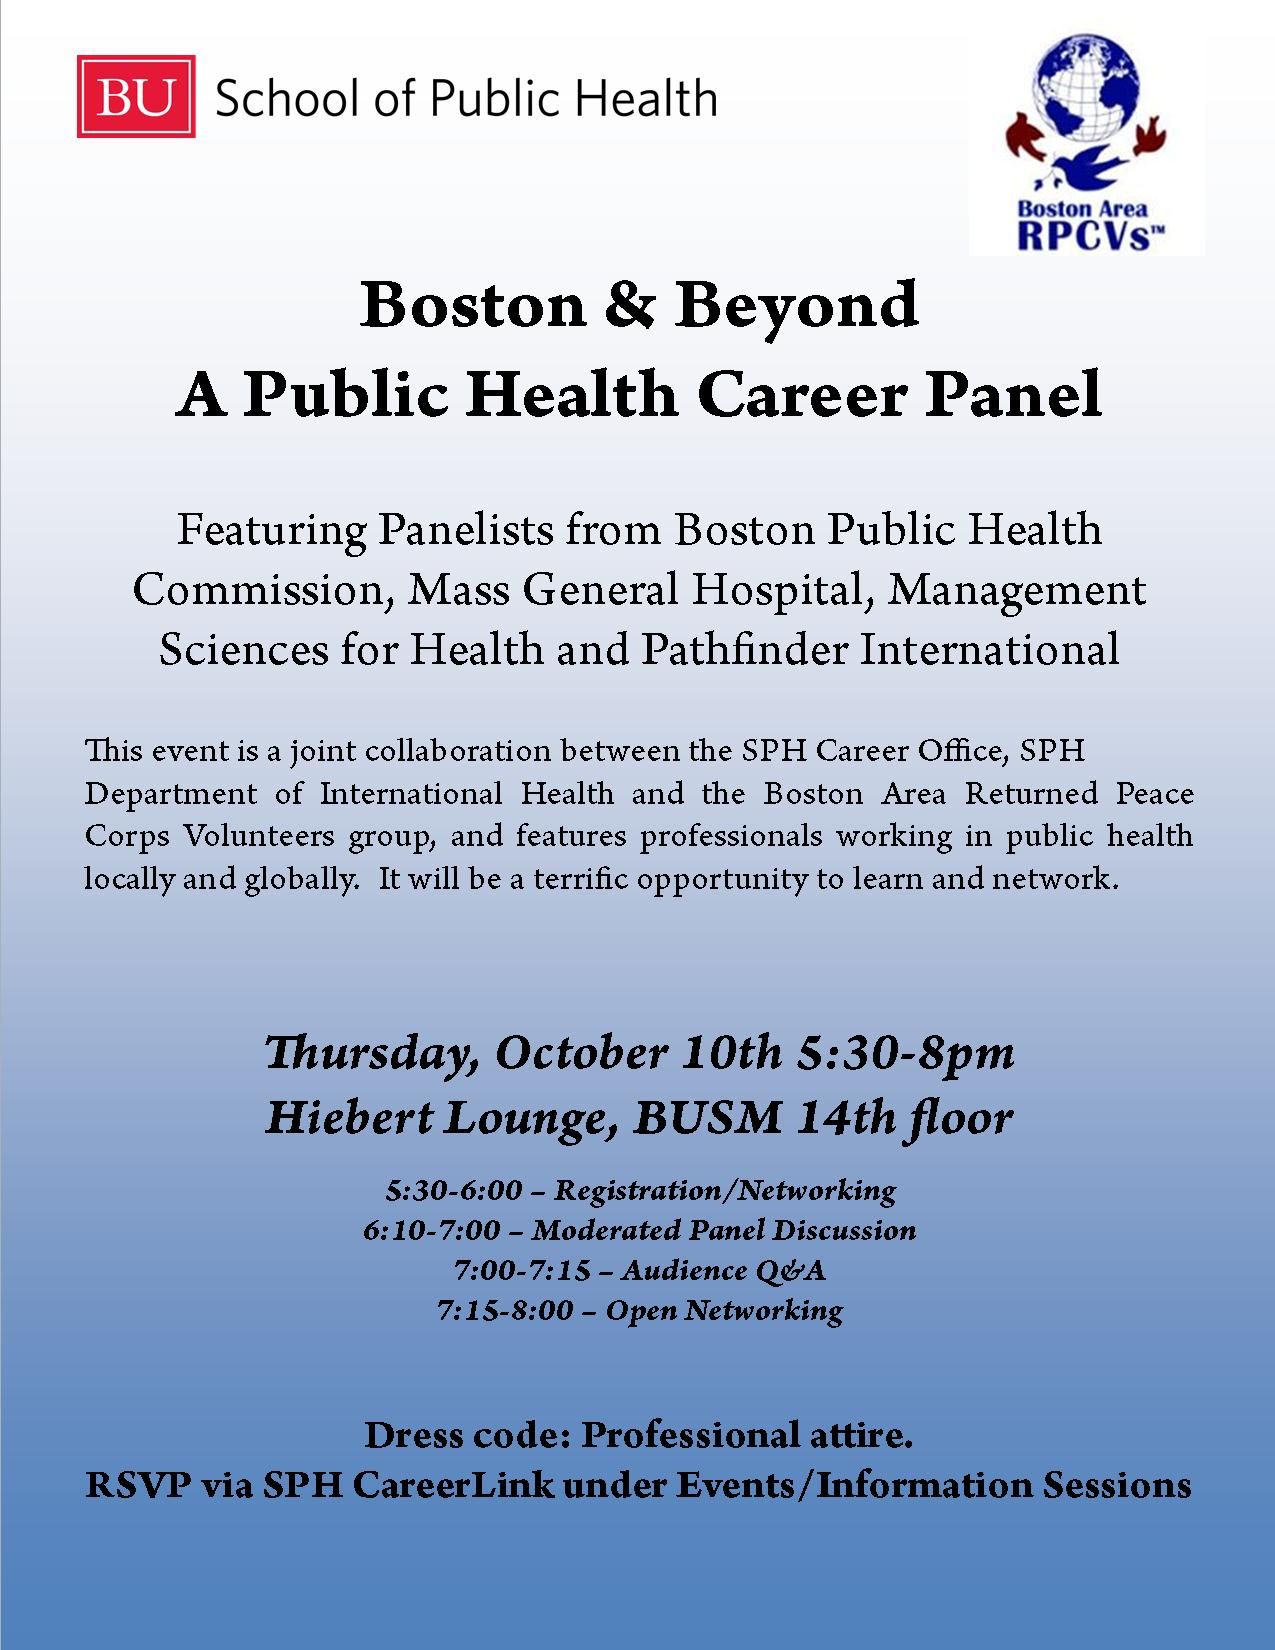 BUSPH Public Health Career Panel October 10th-RSVP via the SPH